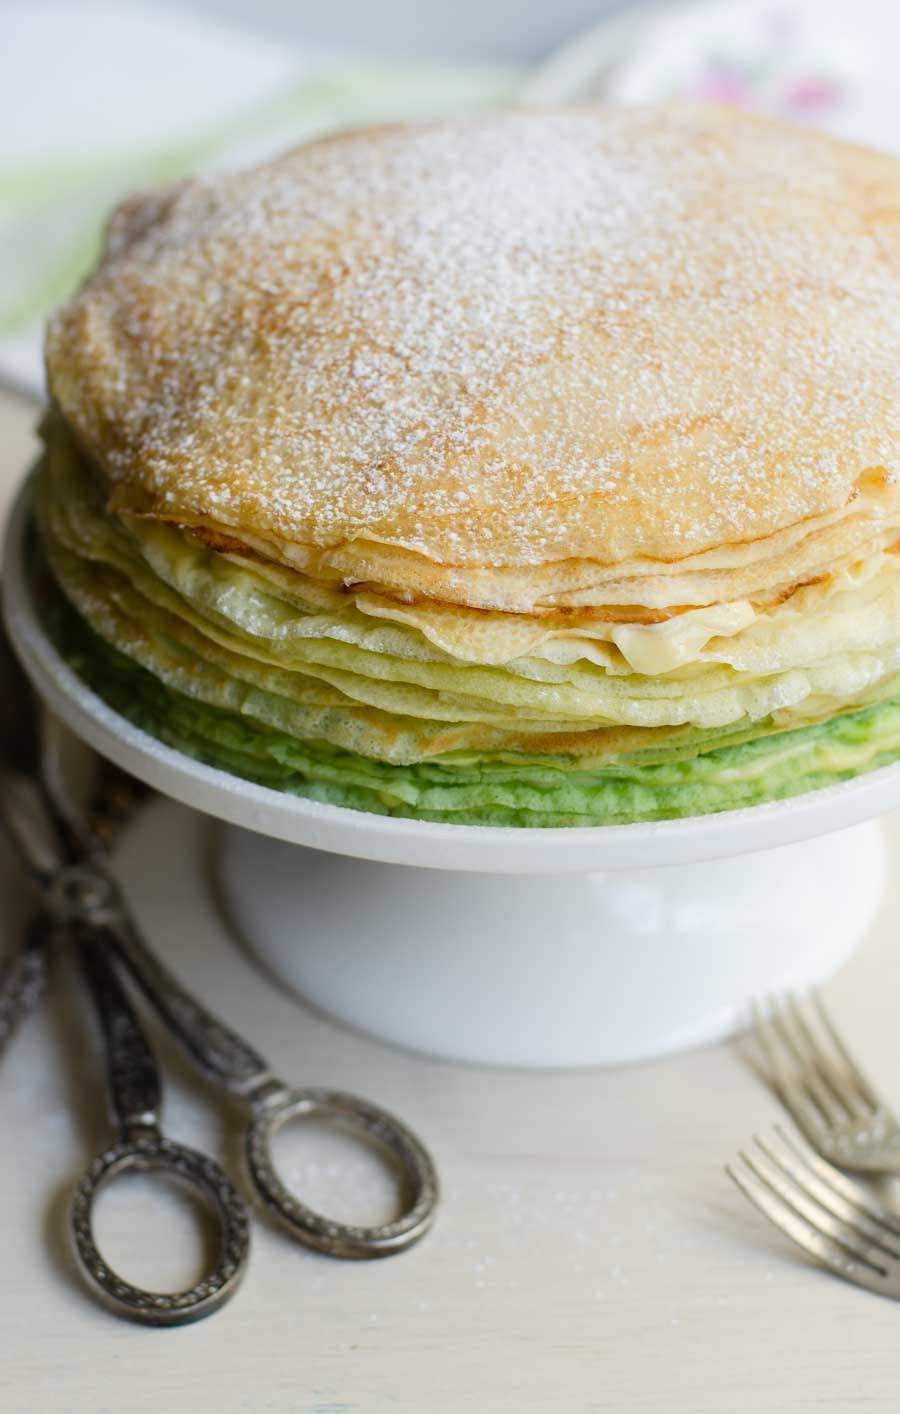 Green ombre Durian crepe cake